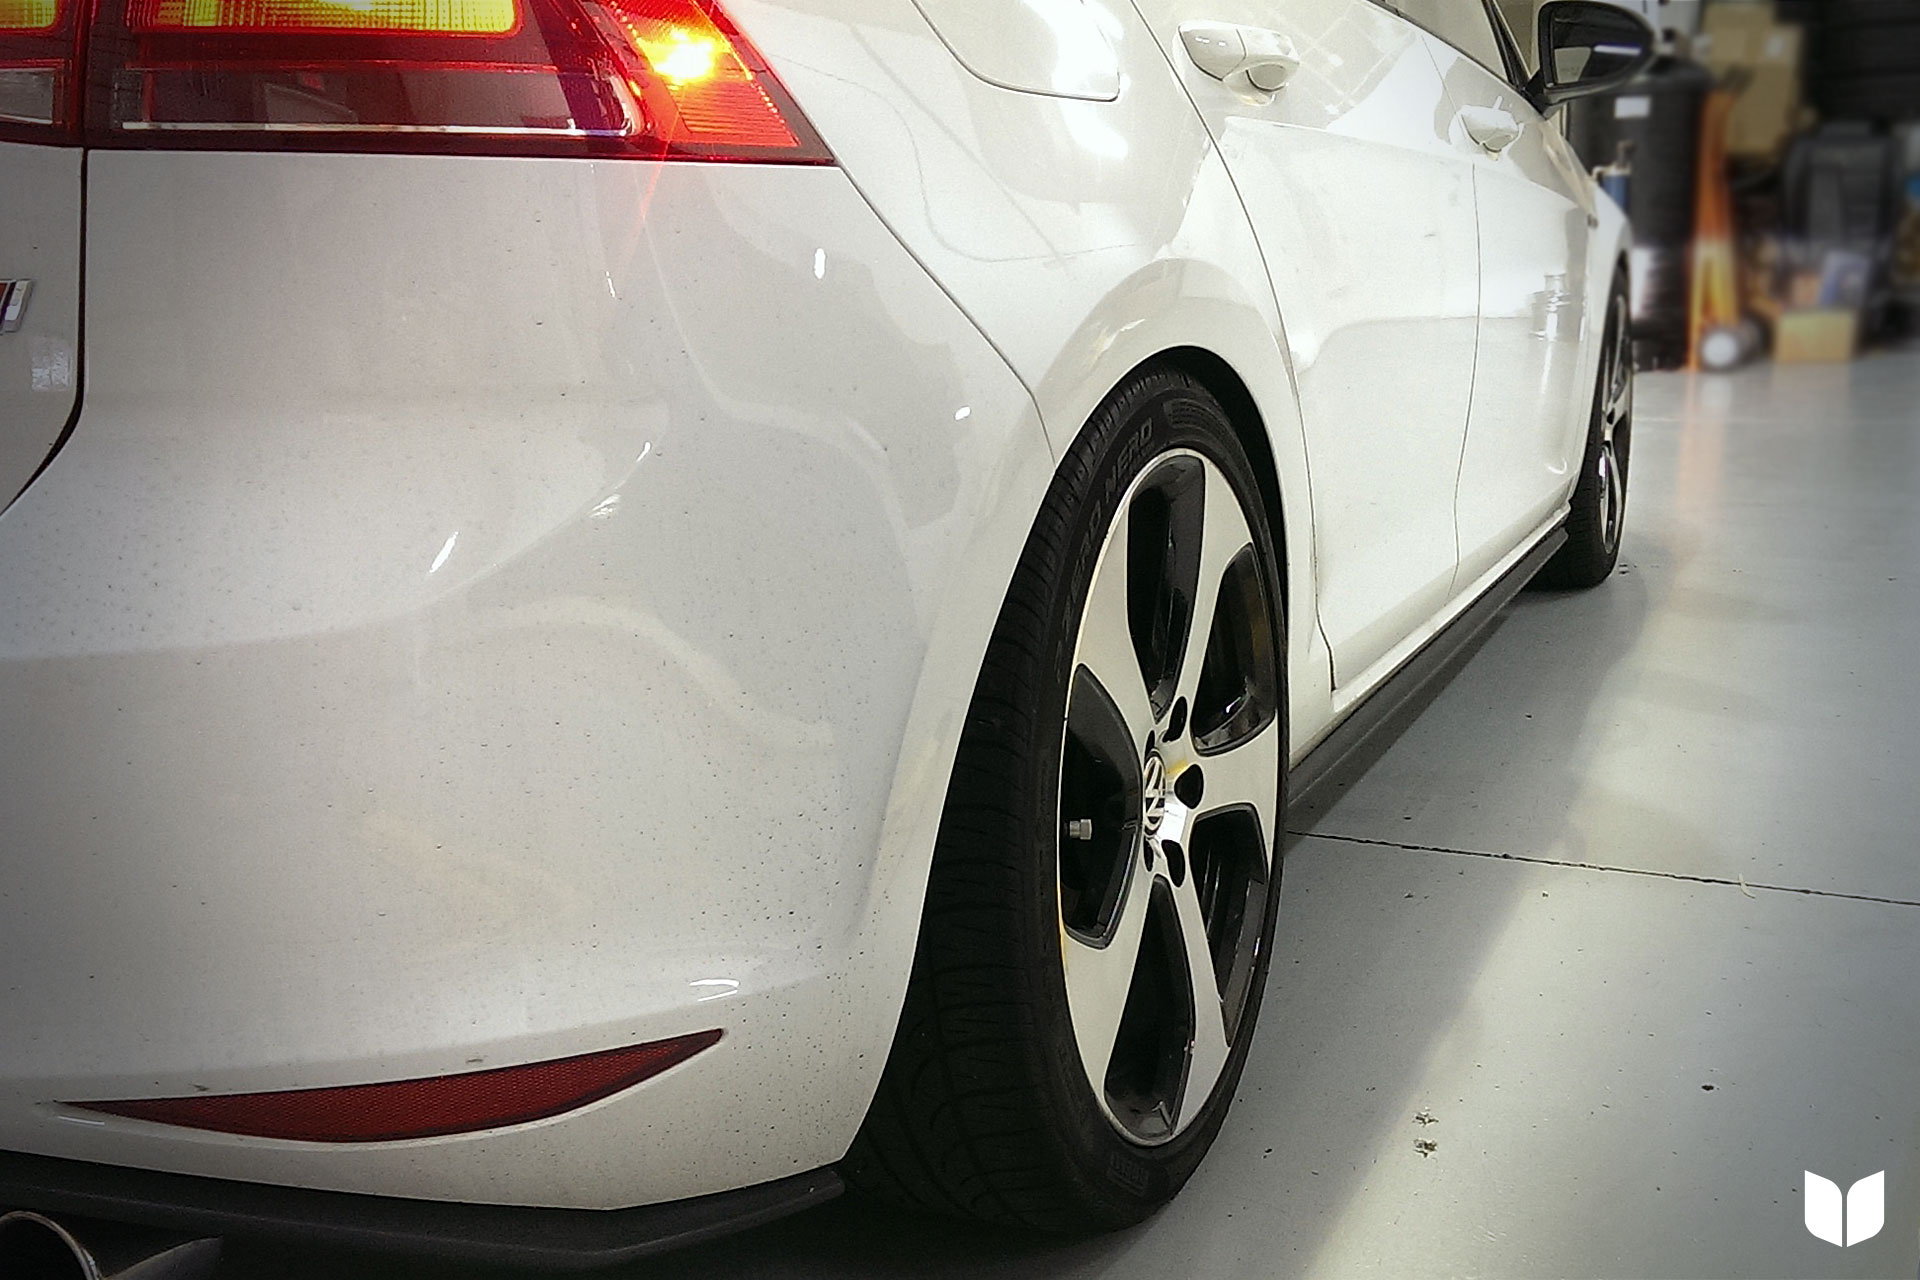 The Wider Stance Provided by the ECS Tuning GTI Flush Wheel Spacer Kit